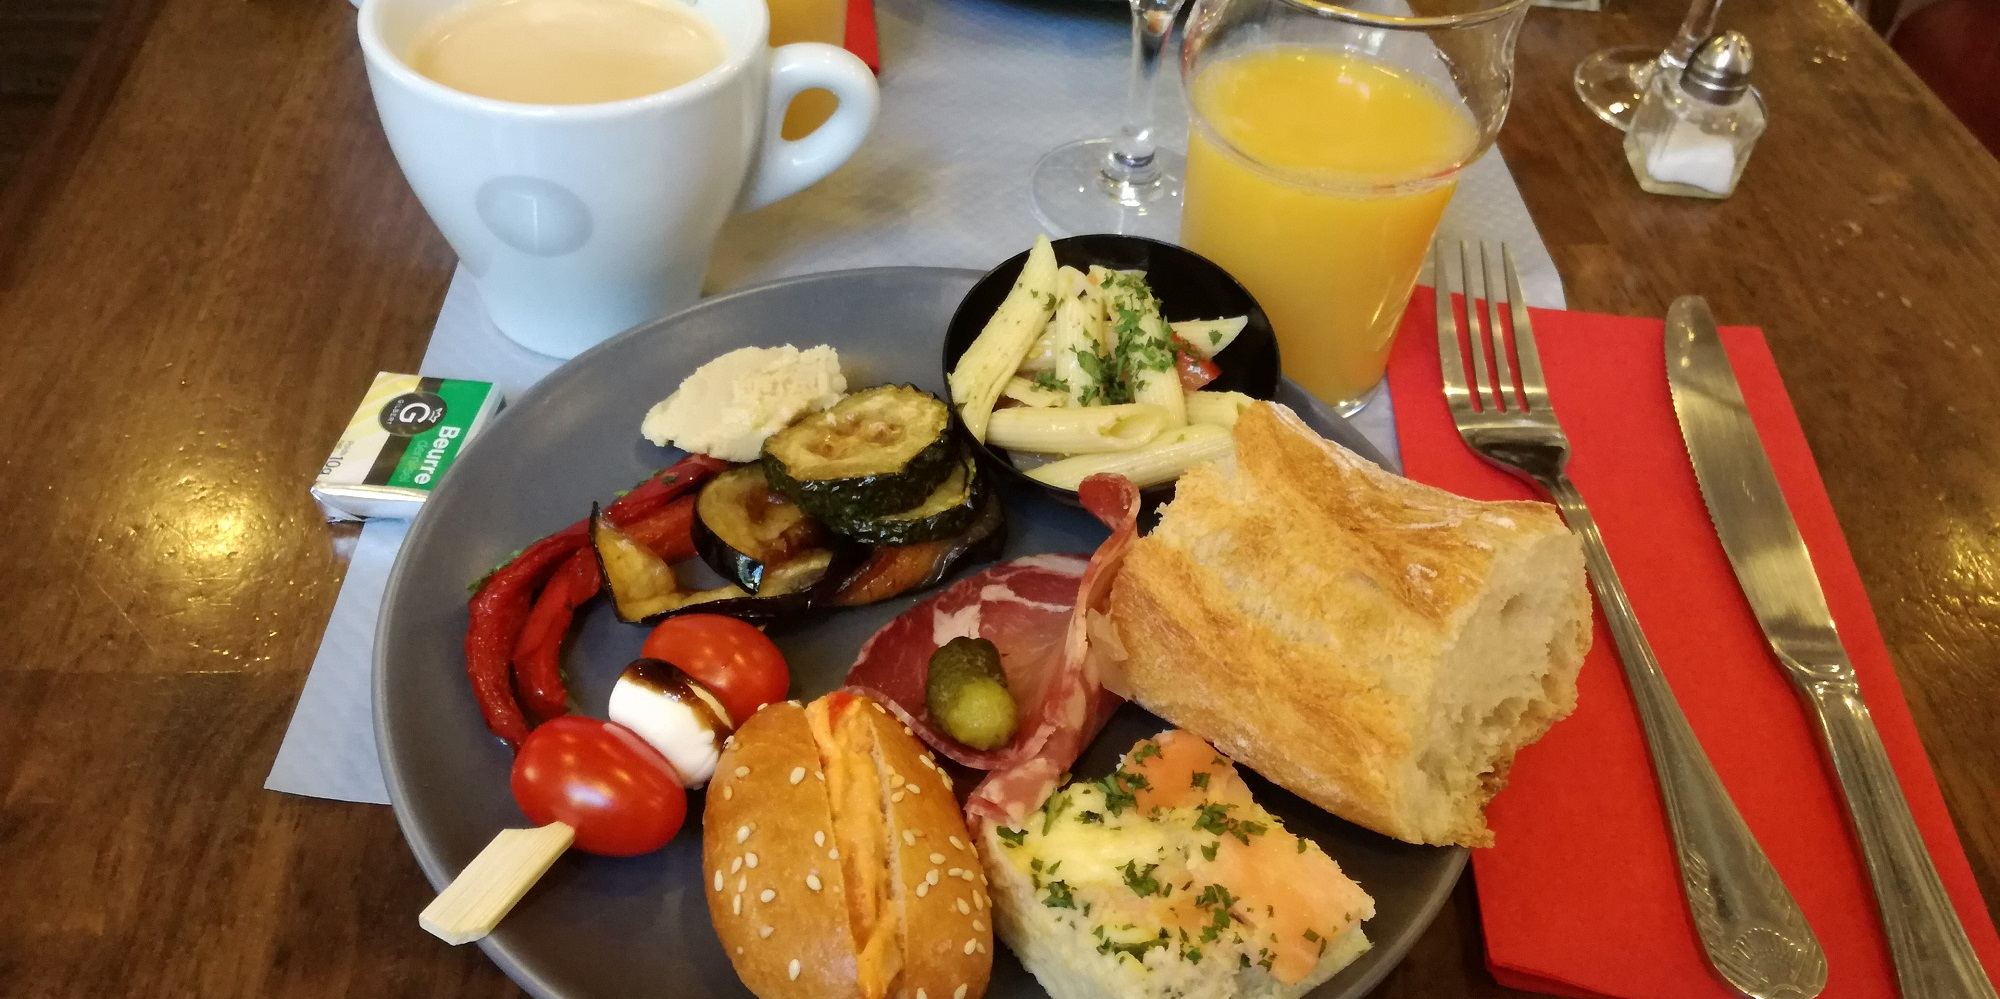 Brunch Chez Pierrot (75014 Paris 14ème)